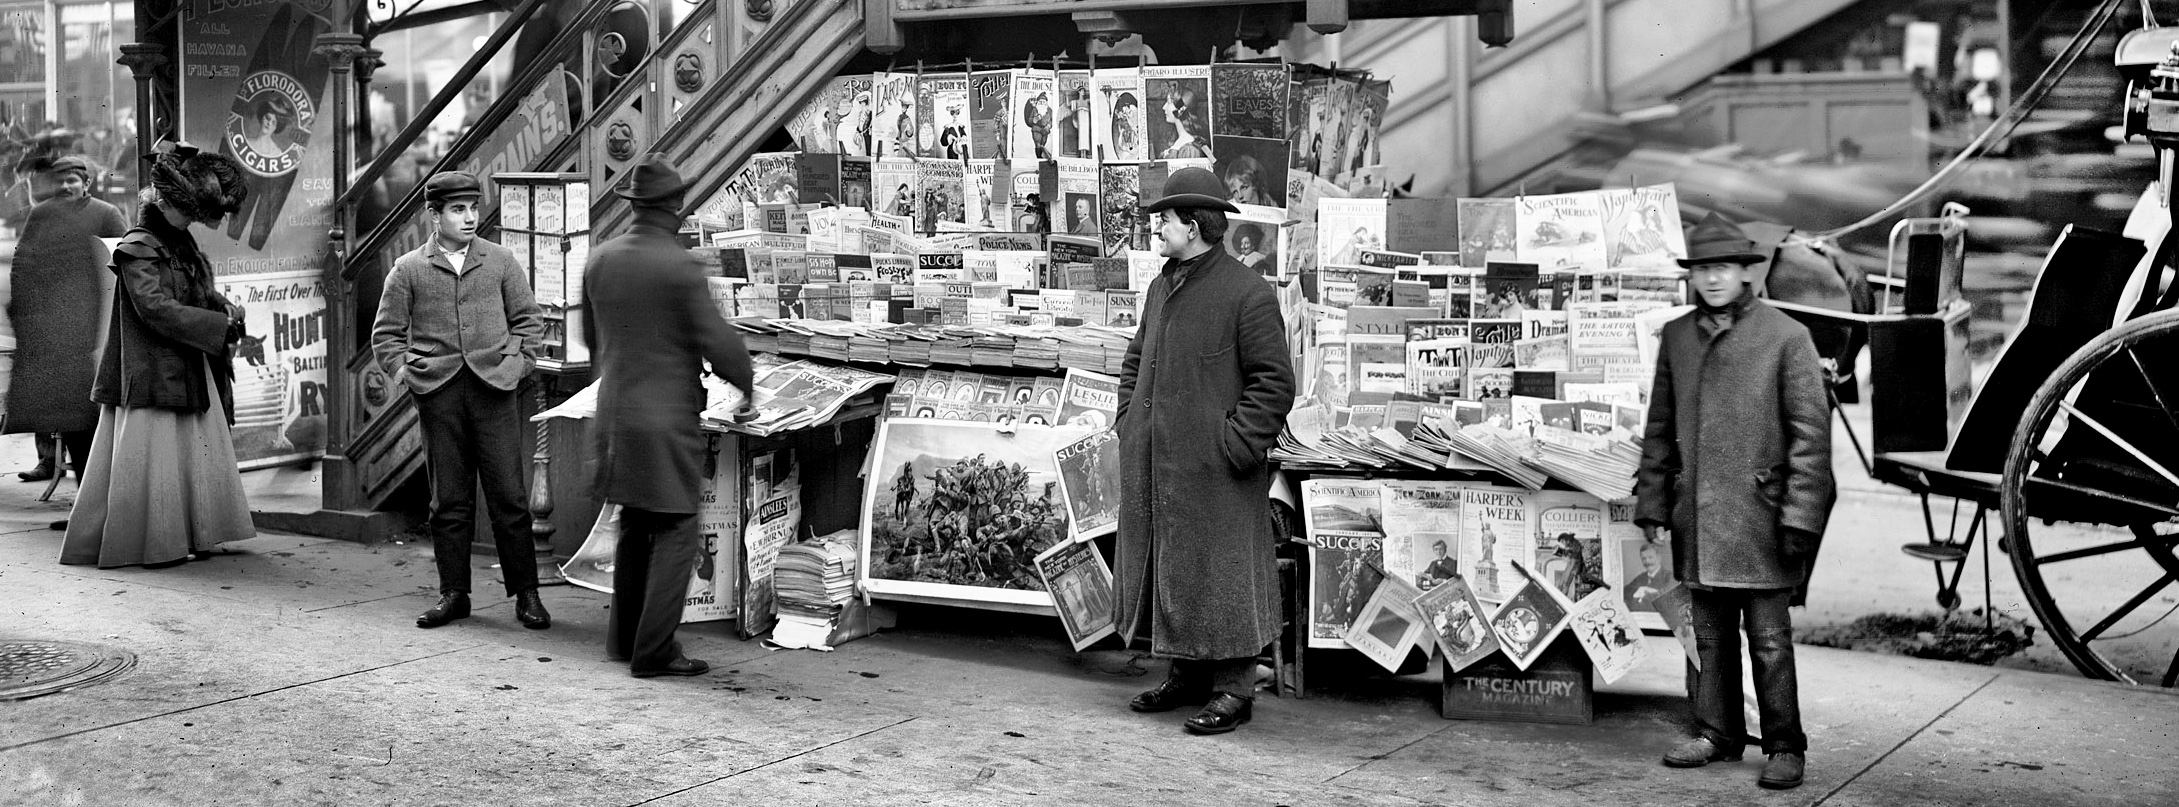 Newsstand near El Station NYC ca 1903